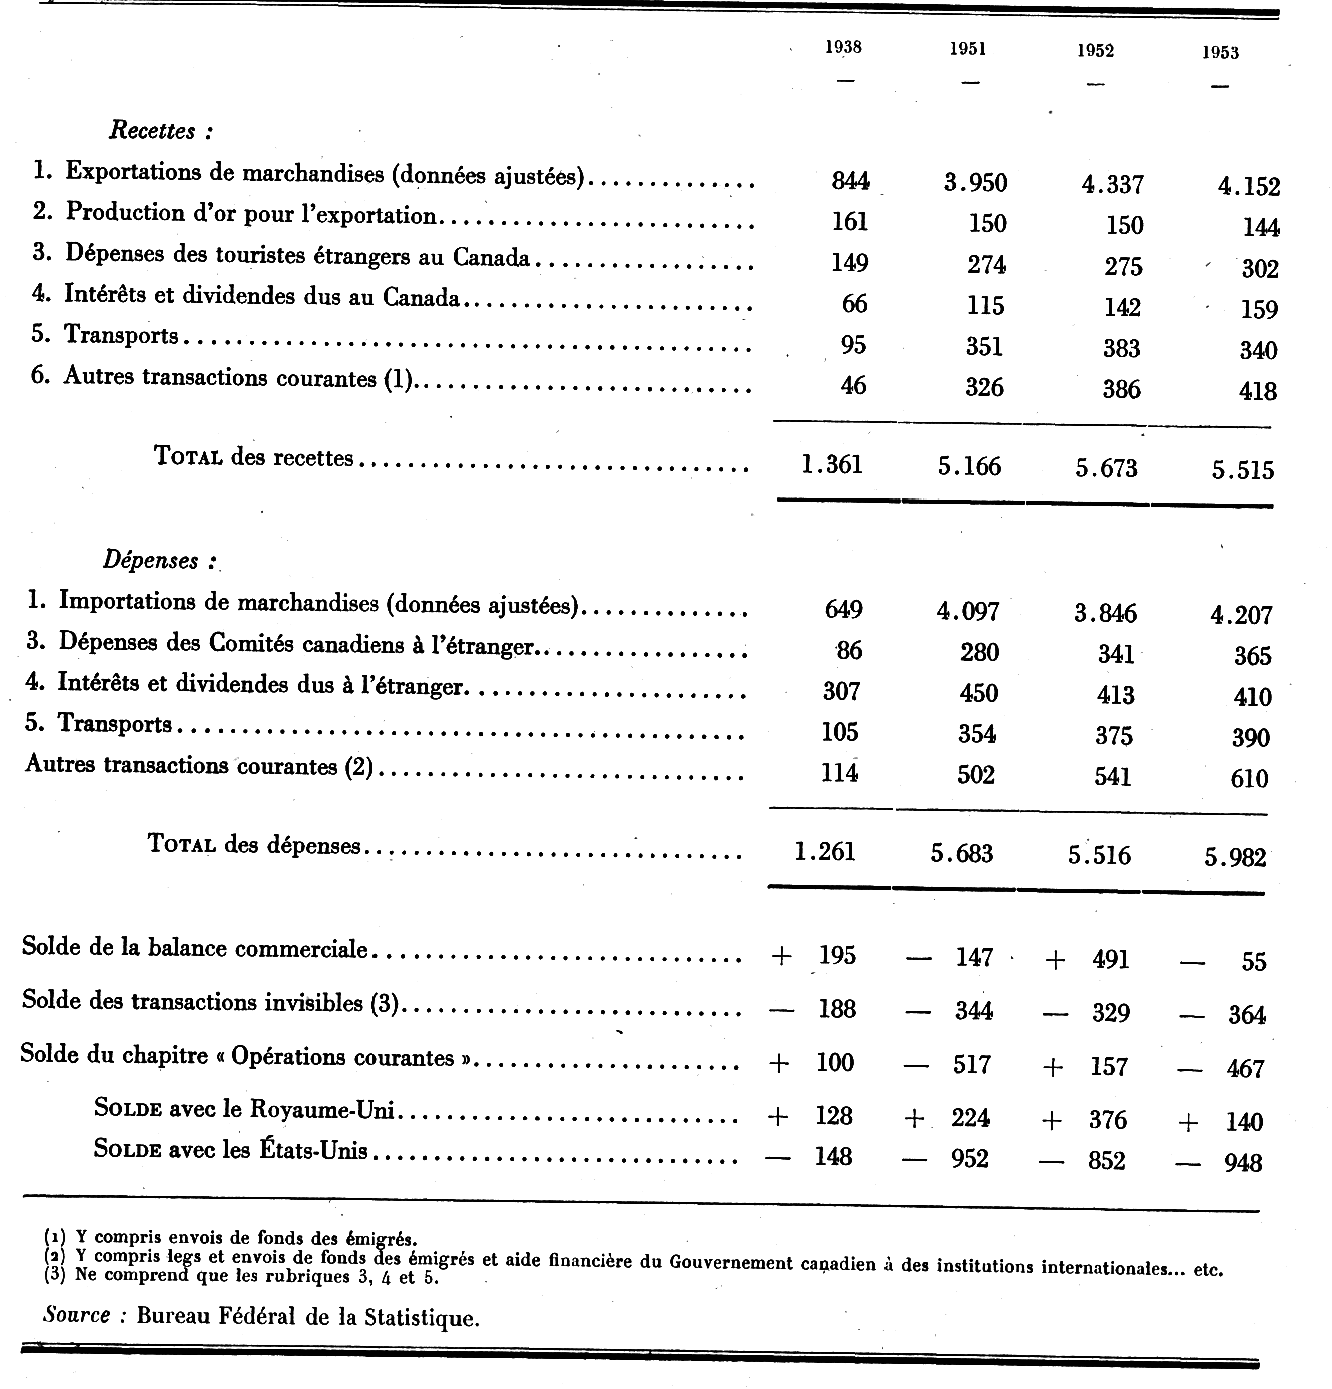 Le commerce ext rieur du canada en 1938 et de 1951 1953 for Commerce exterieur canada